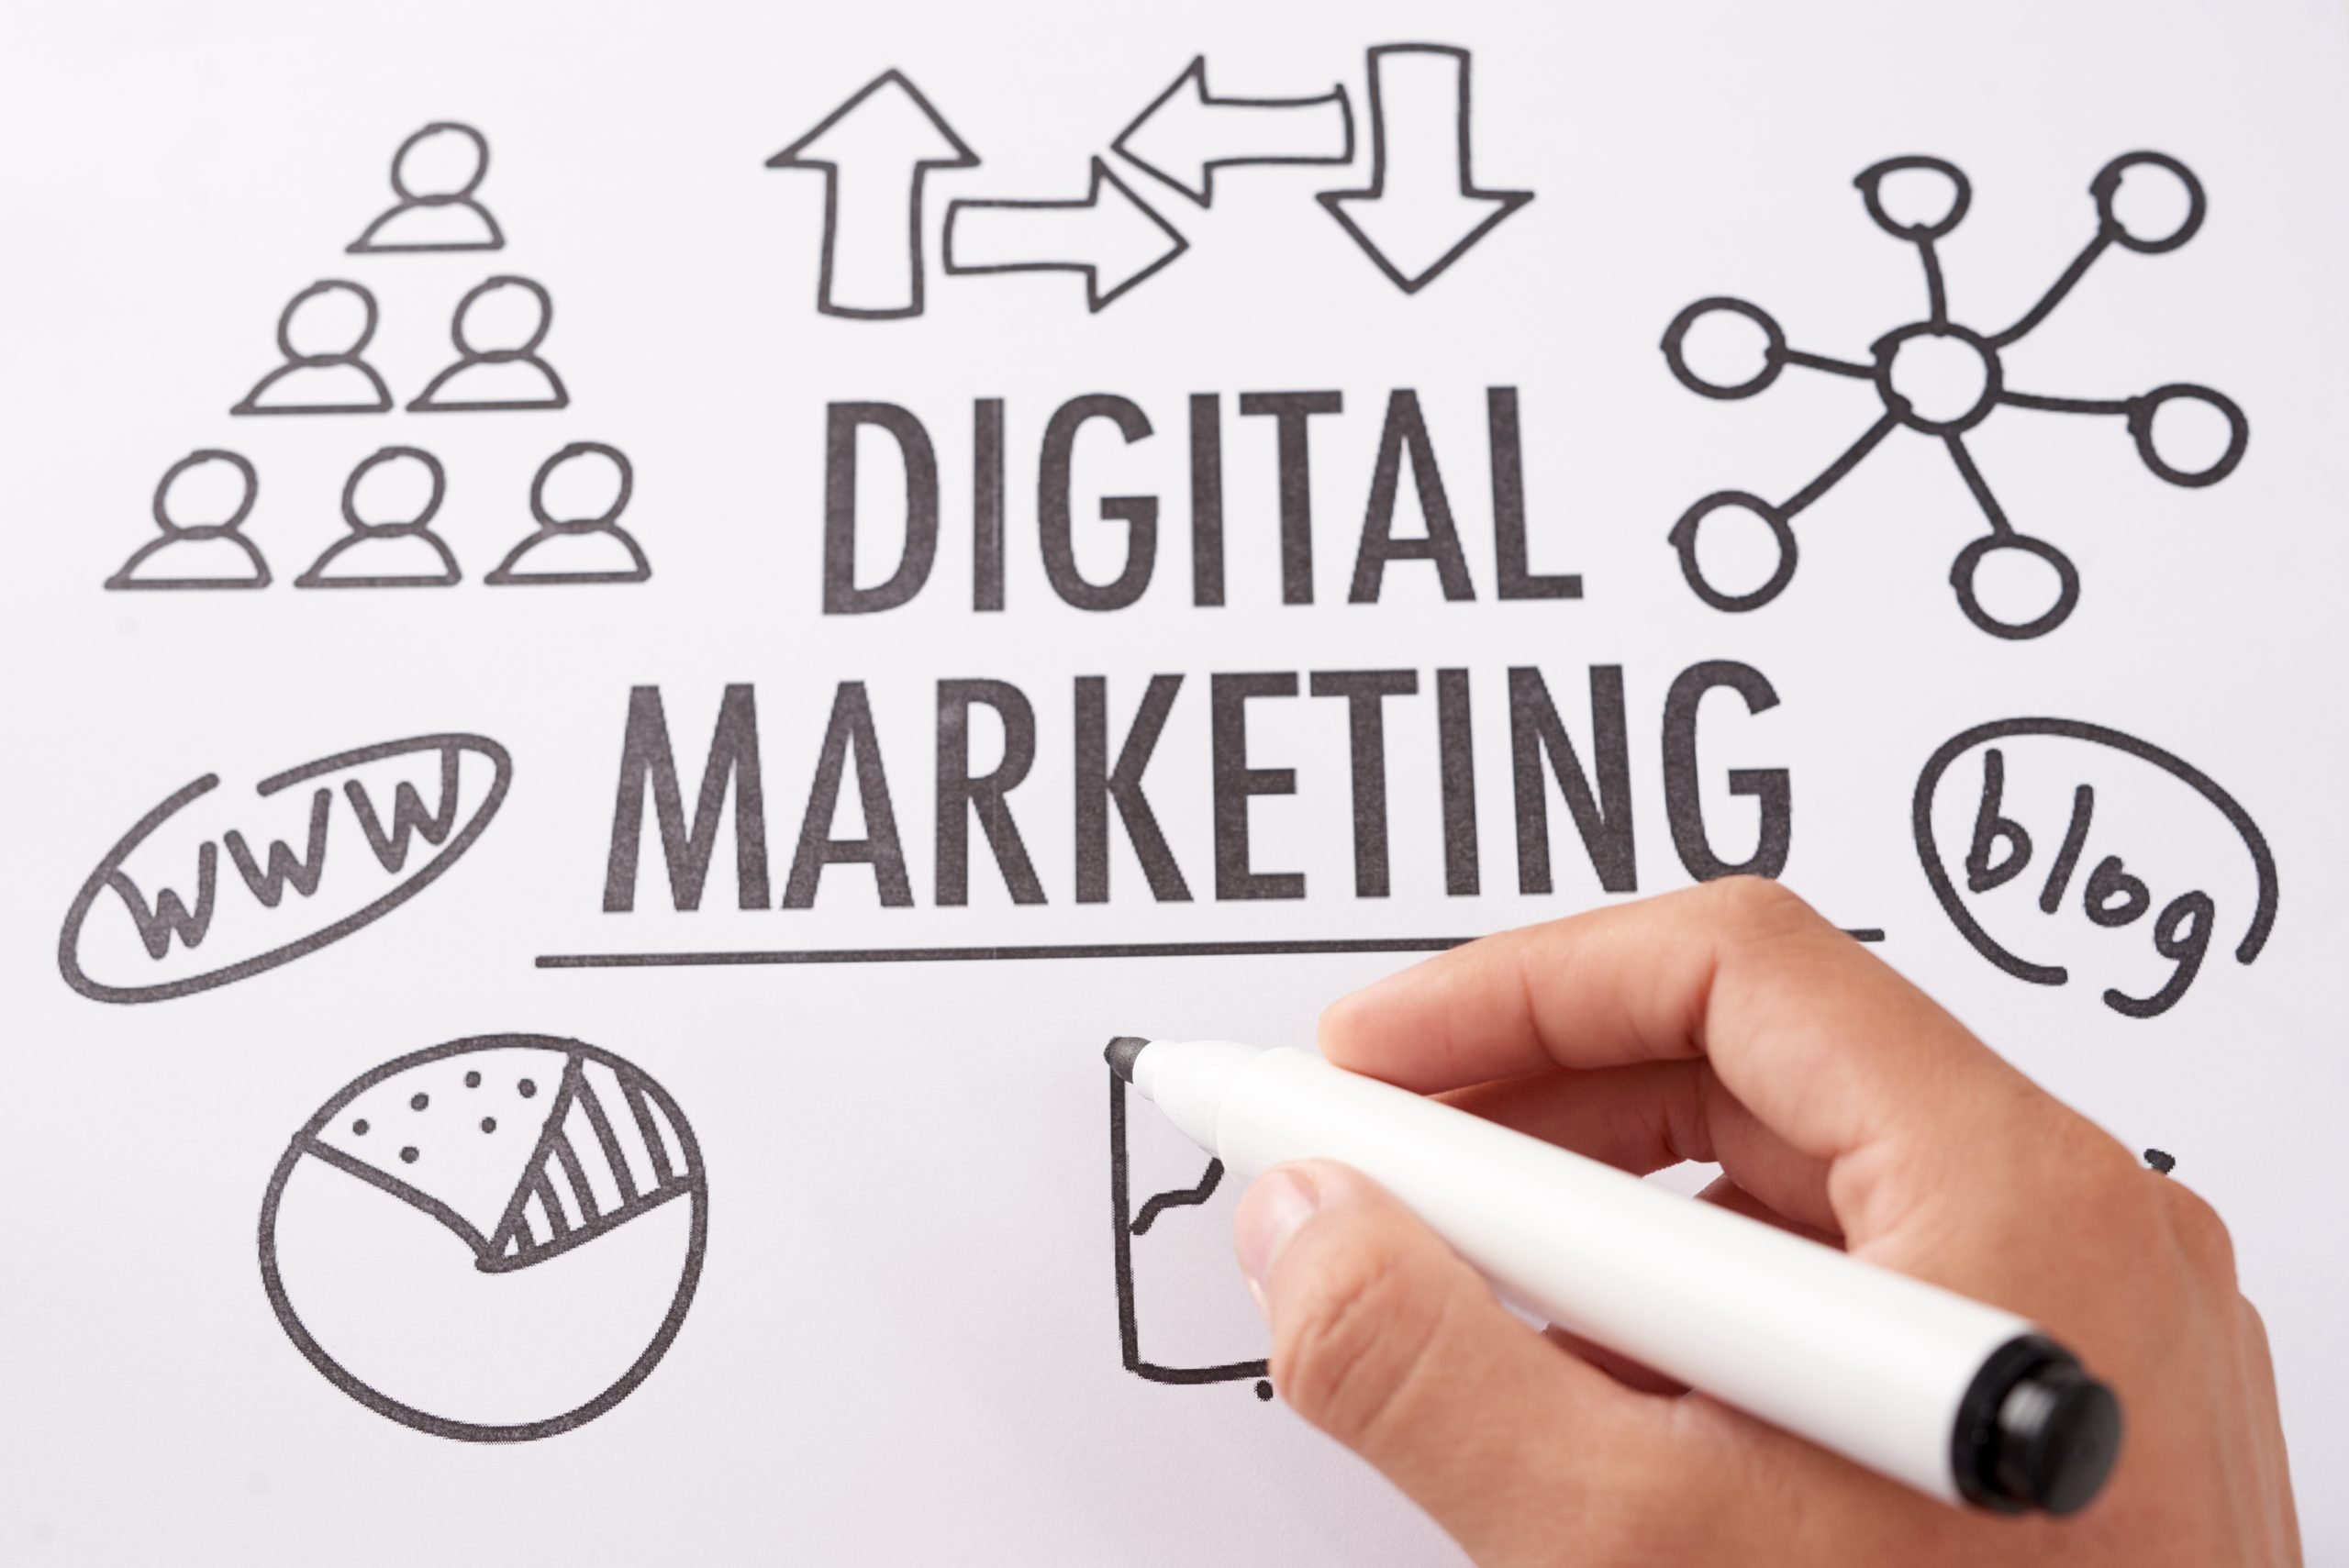 Planning For the Digital Marketing Career You Want